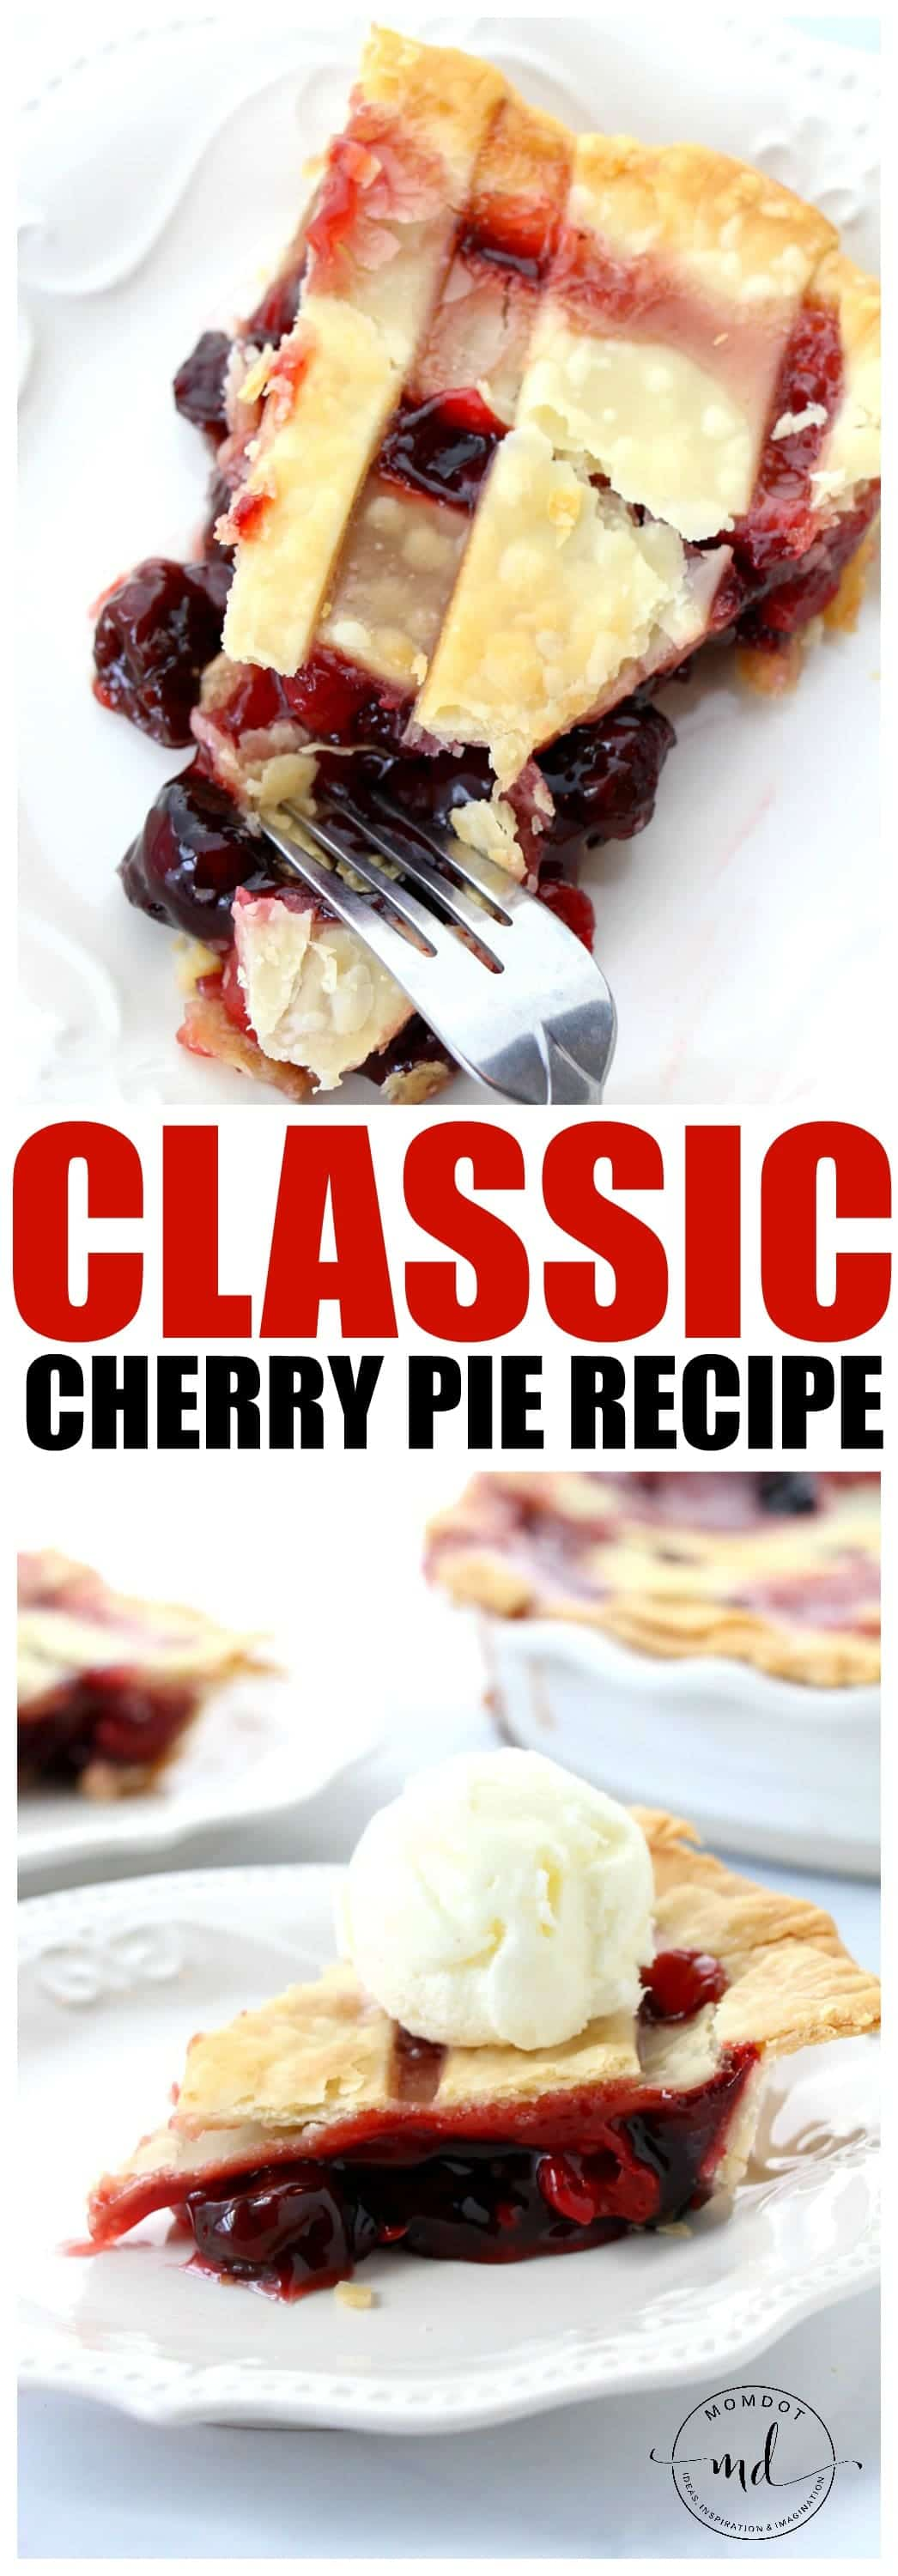 Easy Classic Cherry Pie Recipe! The best cherry pie recipe with lattice top and a tart cherry pie filling perfect for holidays